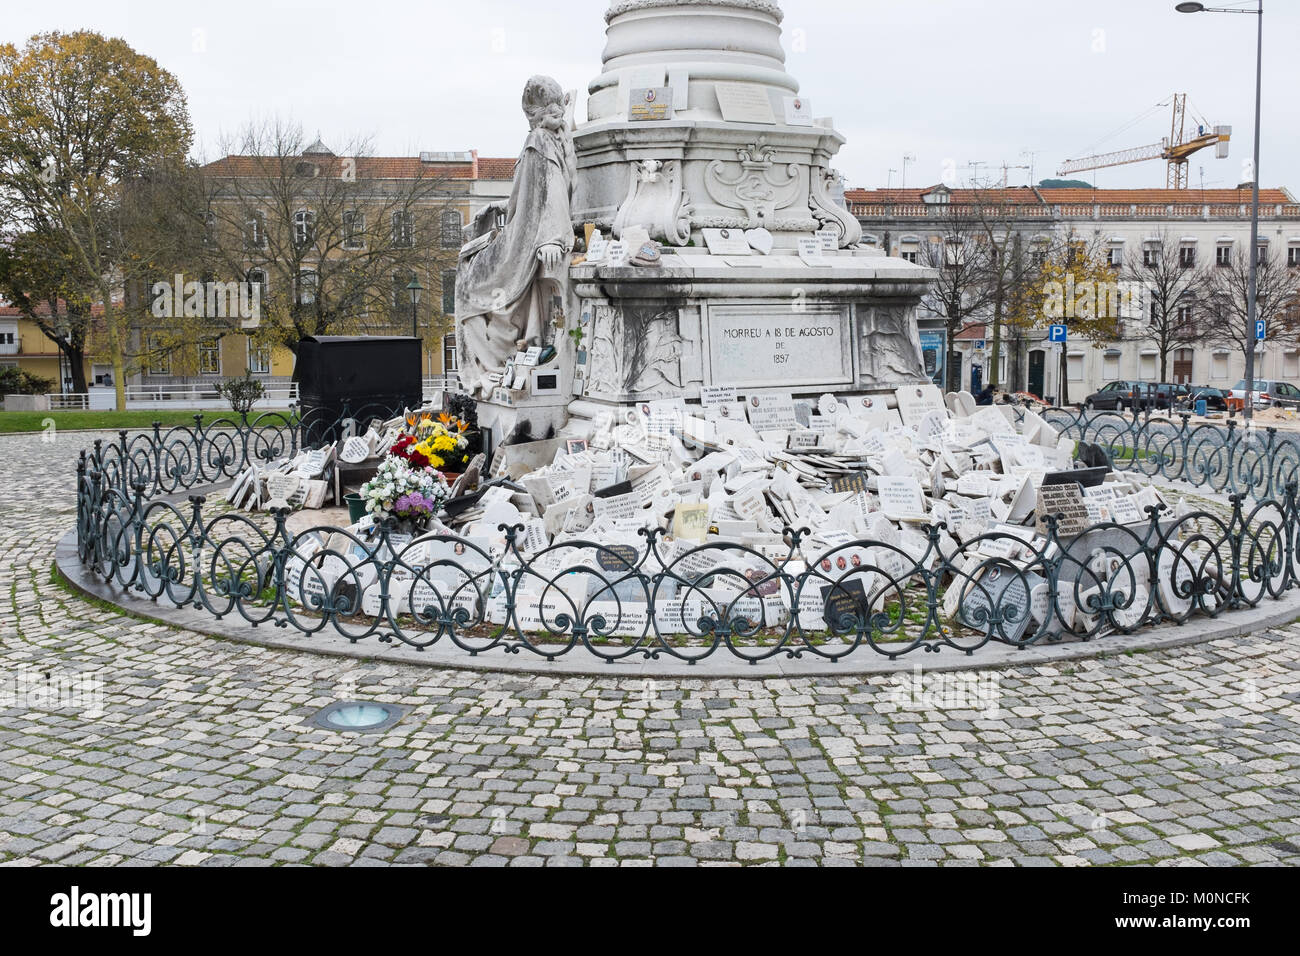 Monumento a Jose Tomas de Sousa Martins in Lisbon. The monument celebrates Dr Jose Tomas who helped the poor and - Stock Image